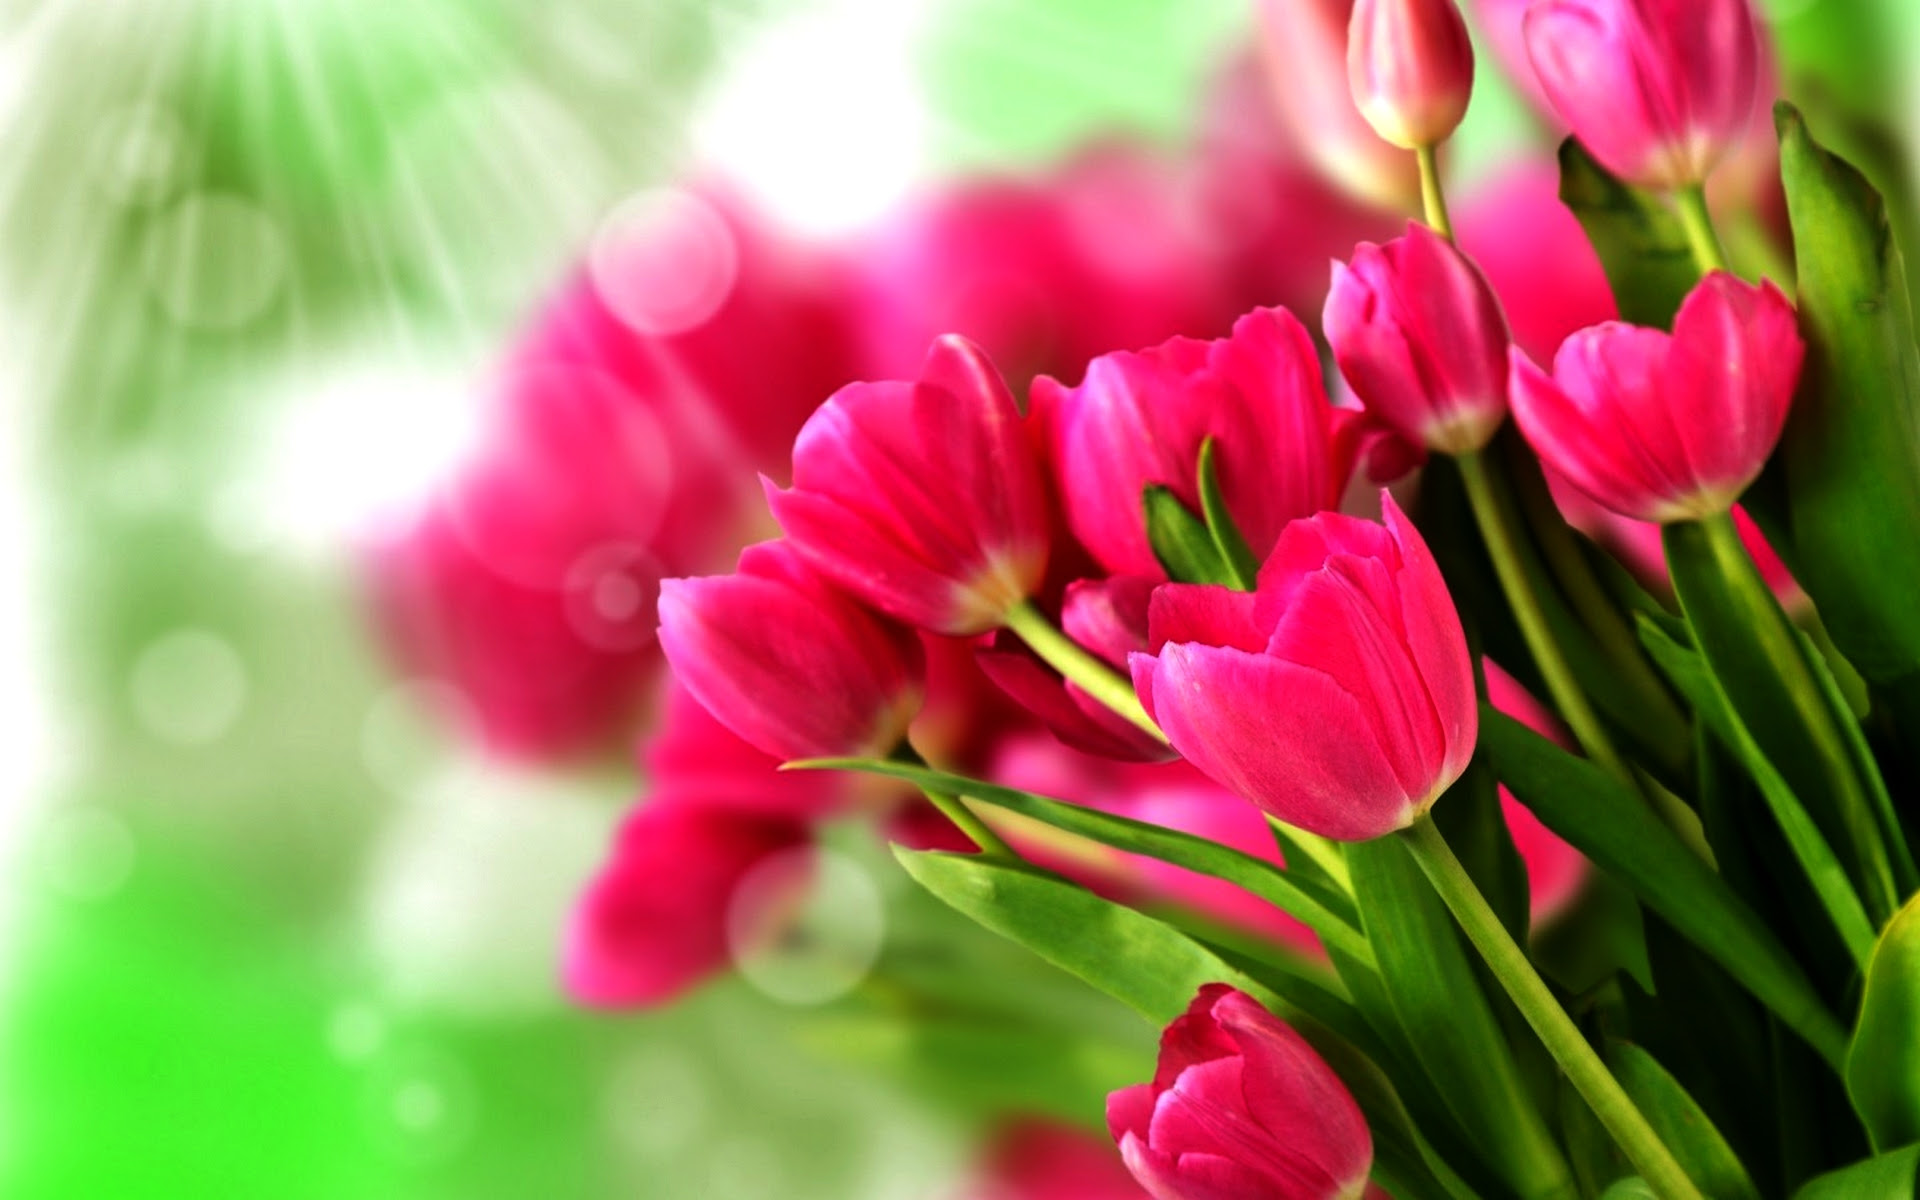 Flowers Images Tulips Hd Wallpaper And Background Photos 33698295